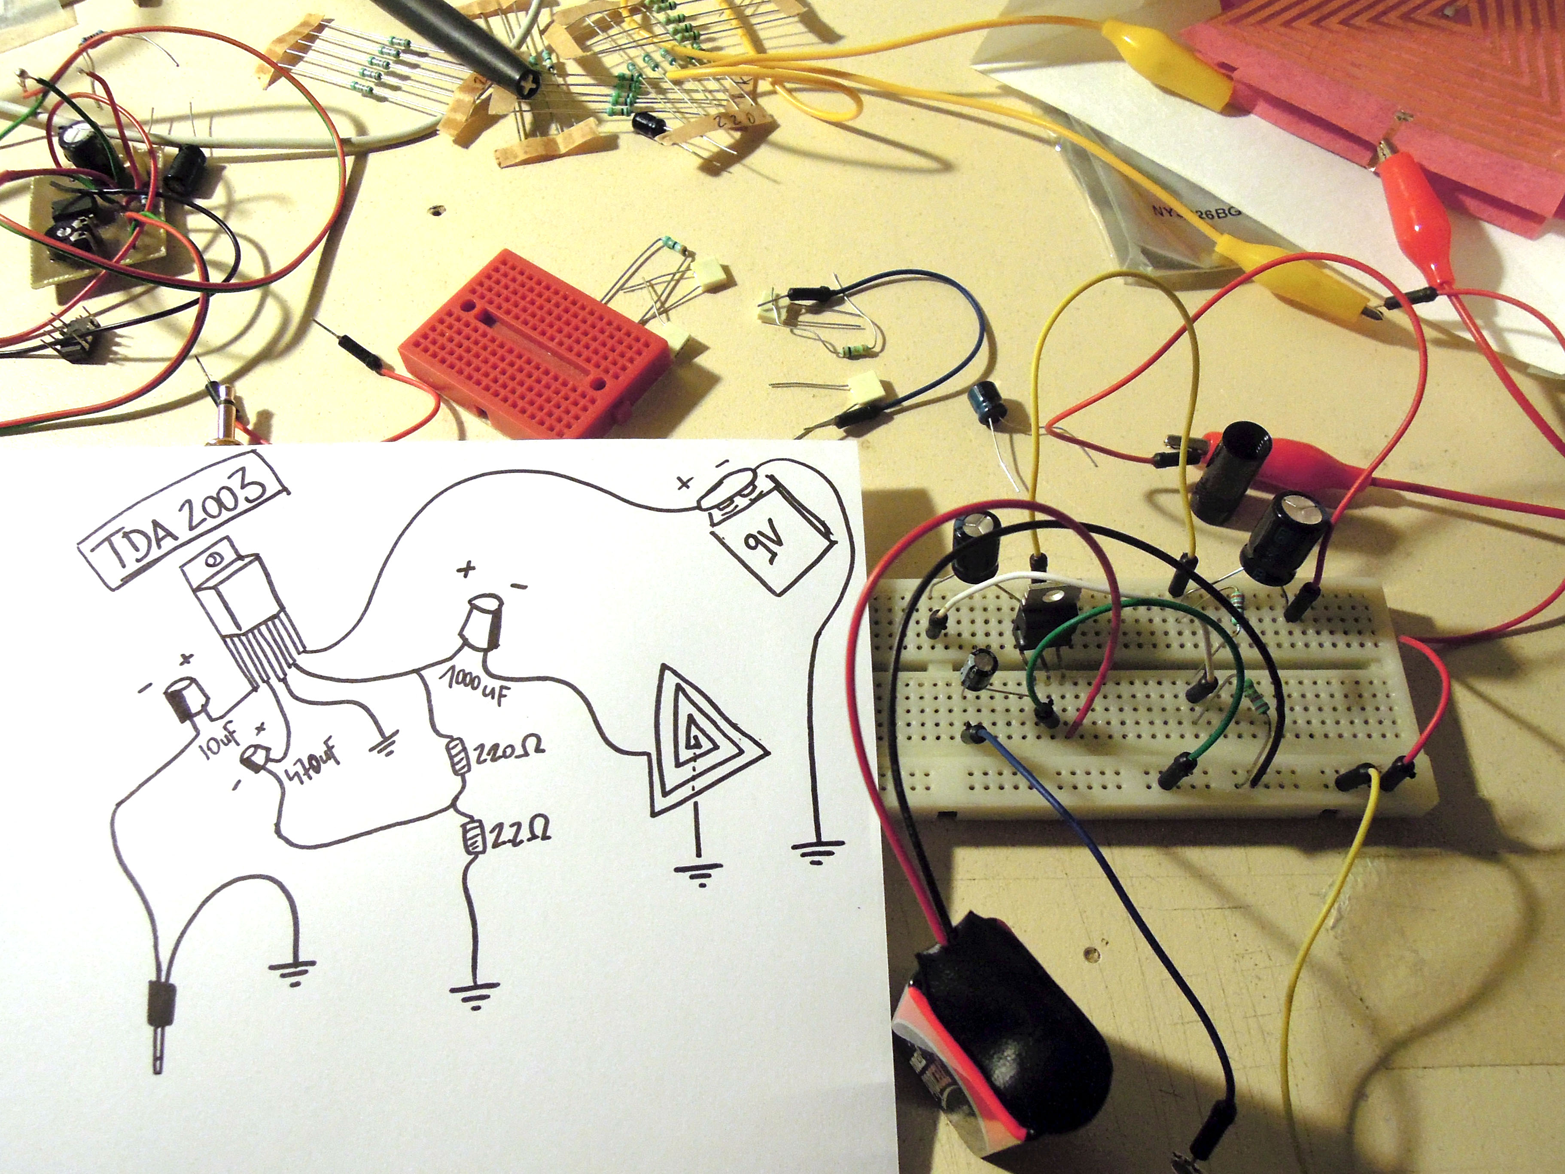 Low-fidelity circuit sketches can be written out as a story or drawn as a diagram (courtesy of Flickr user Dileck)